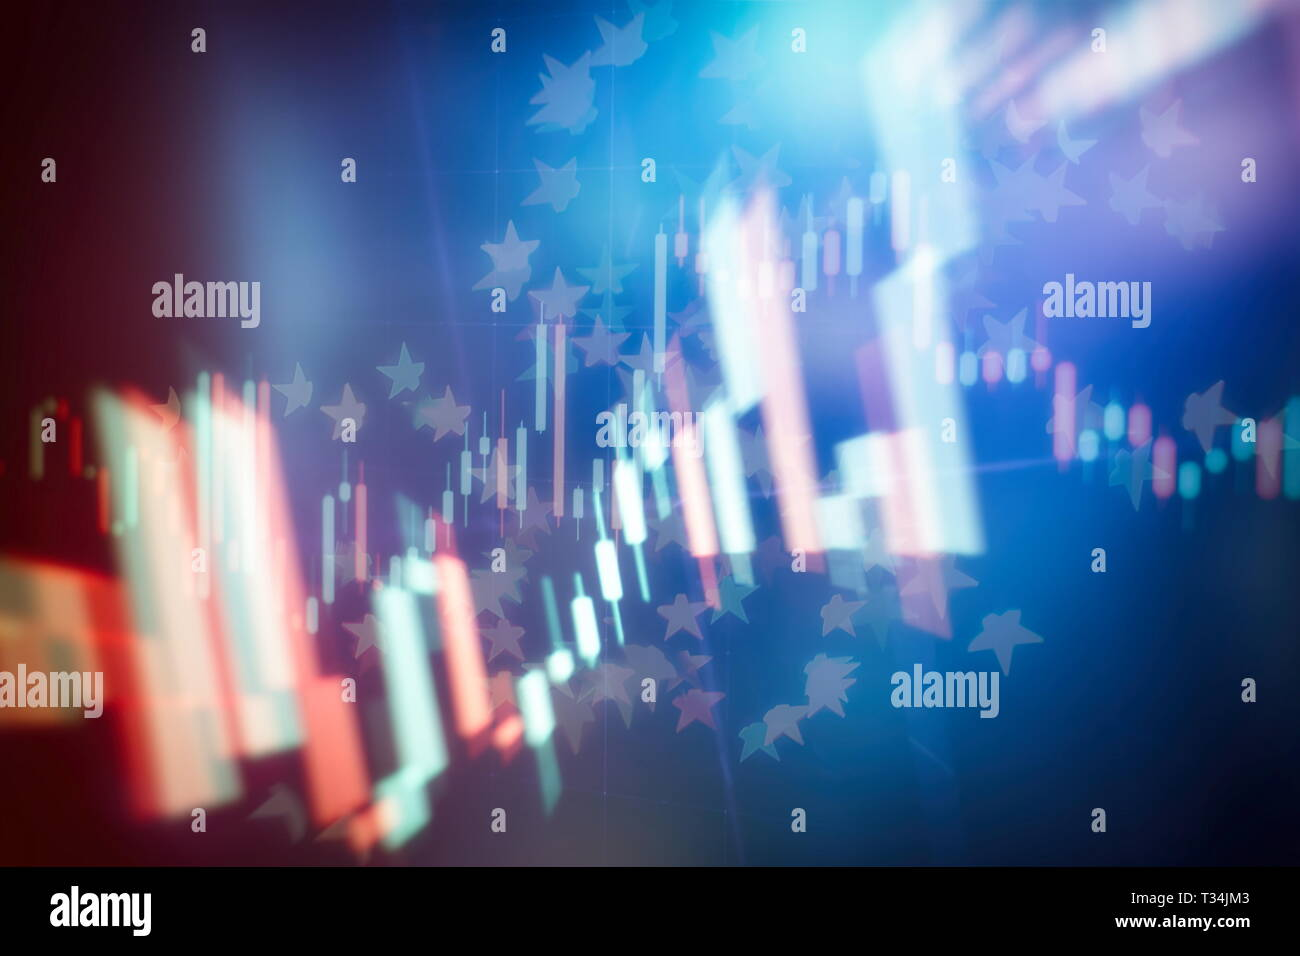 Abstract glowing forex chart interface wallpaper. Investment, trade, stock, finance and analysis concept. - Stock Image